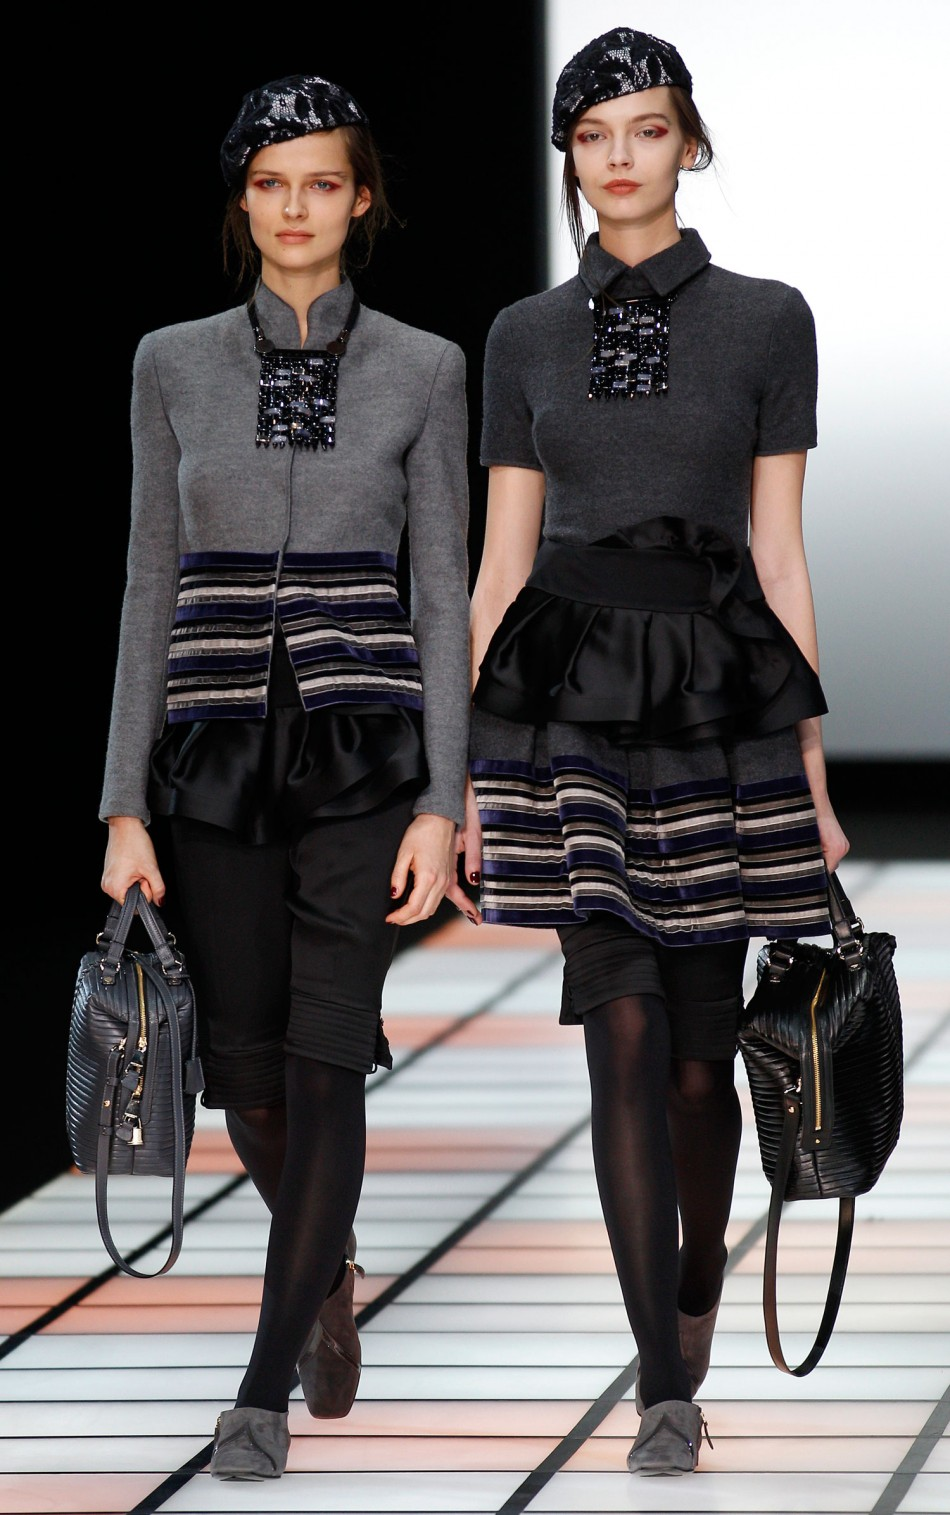 Emporio Armani's 'Little Winter Follies' at 2012 Milan Fashion Week